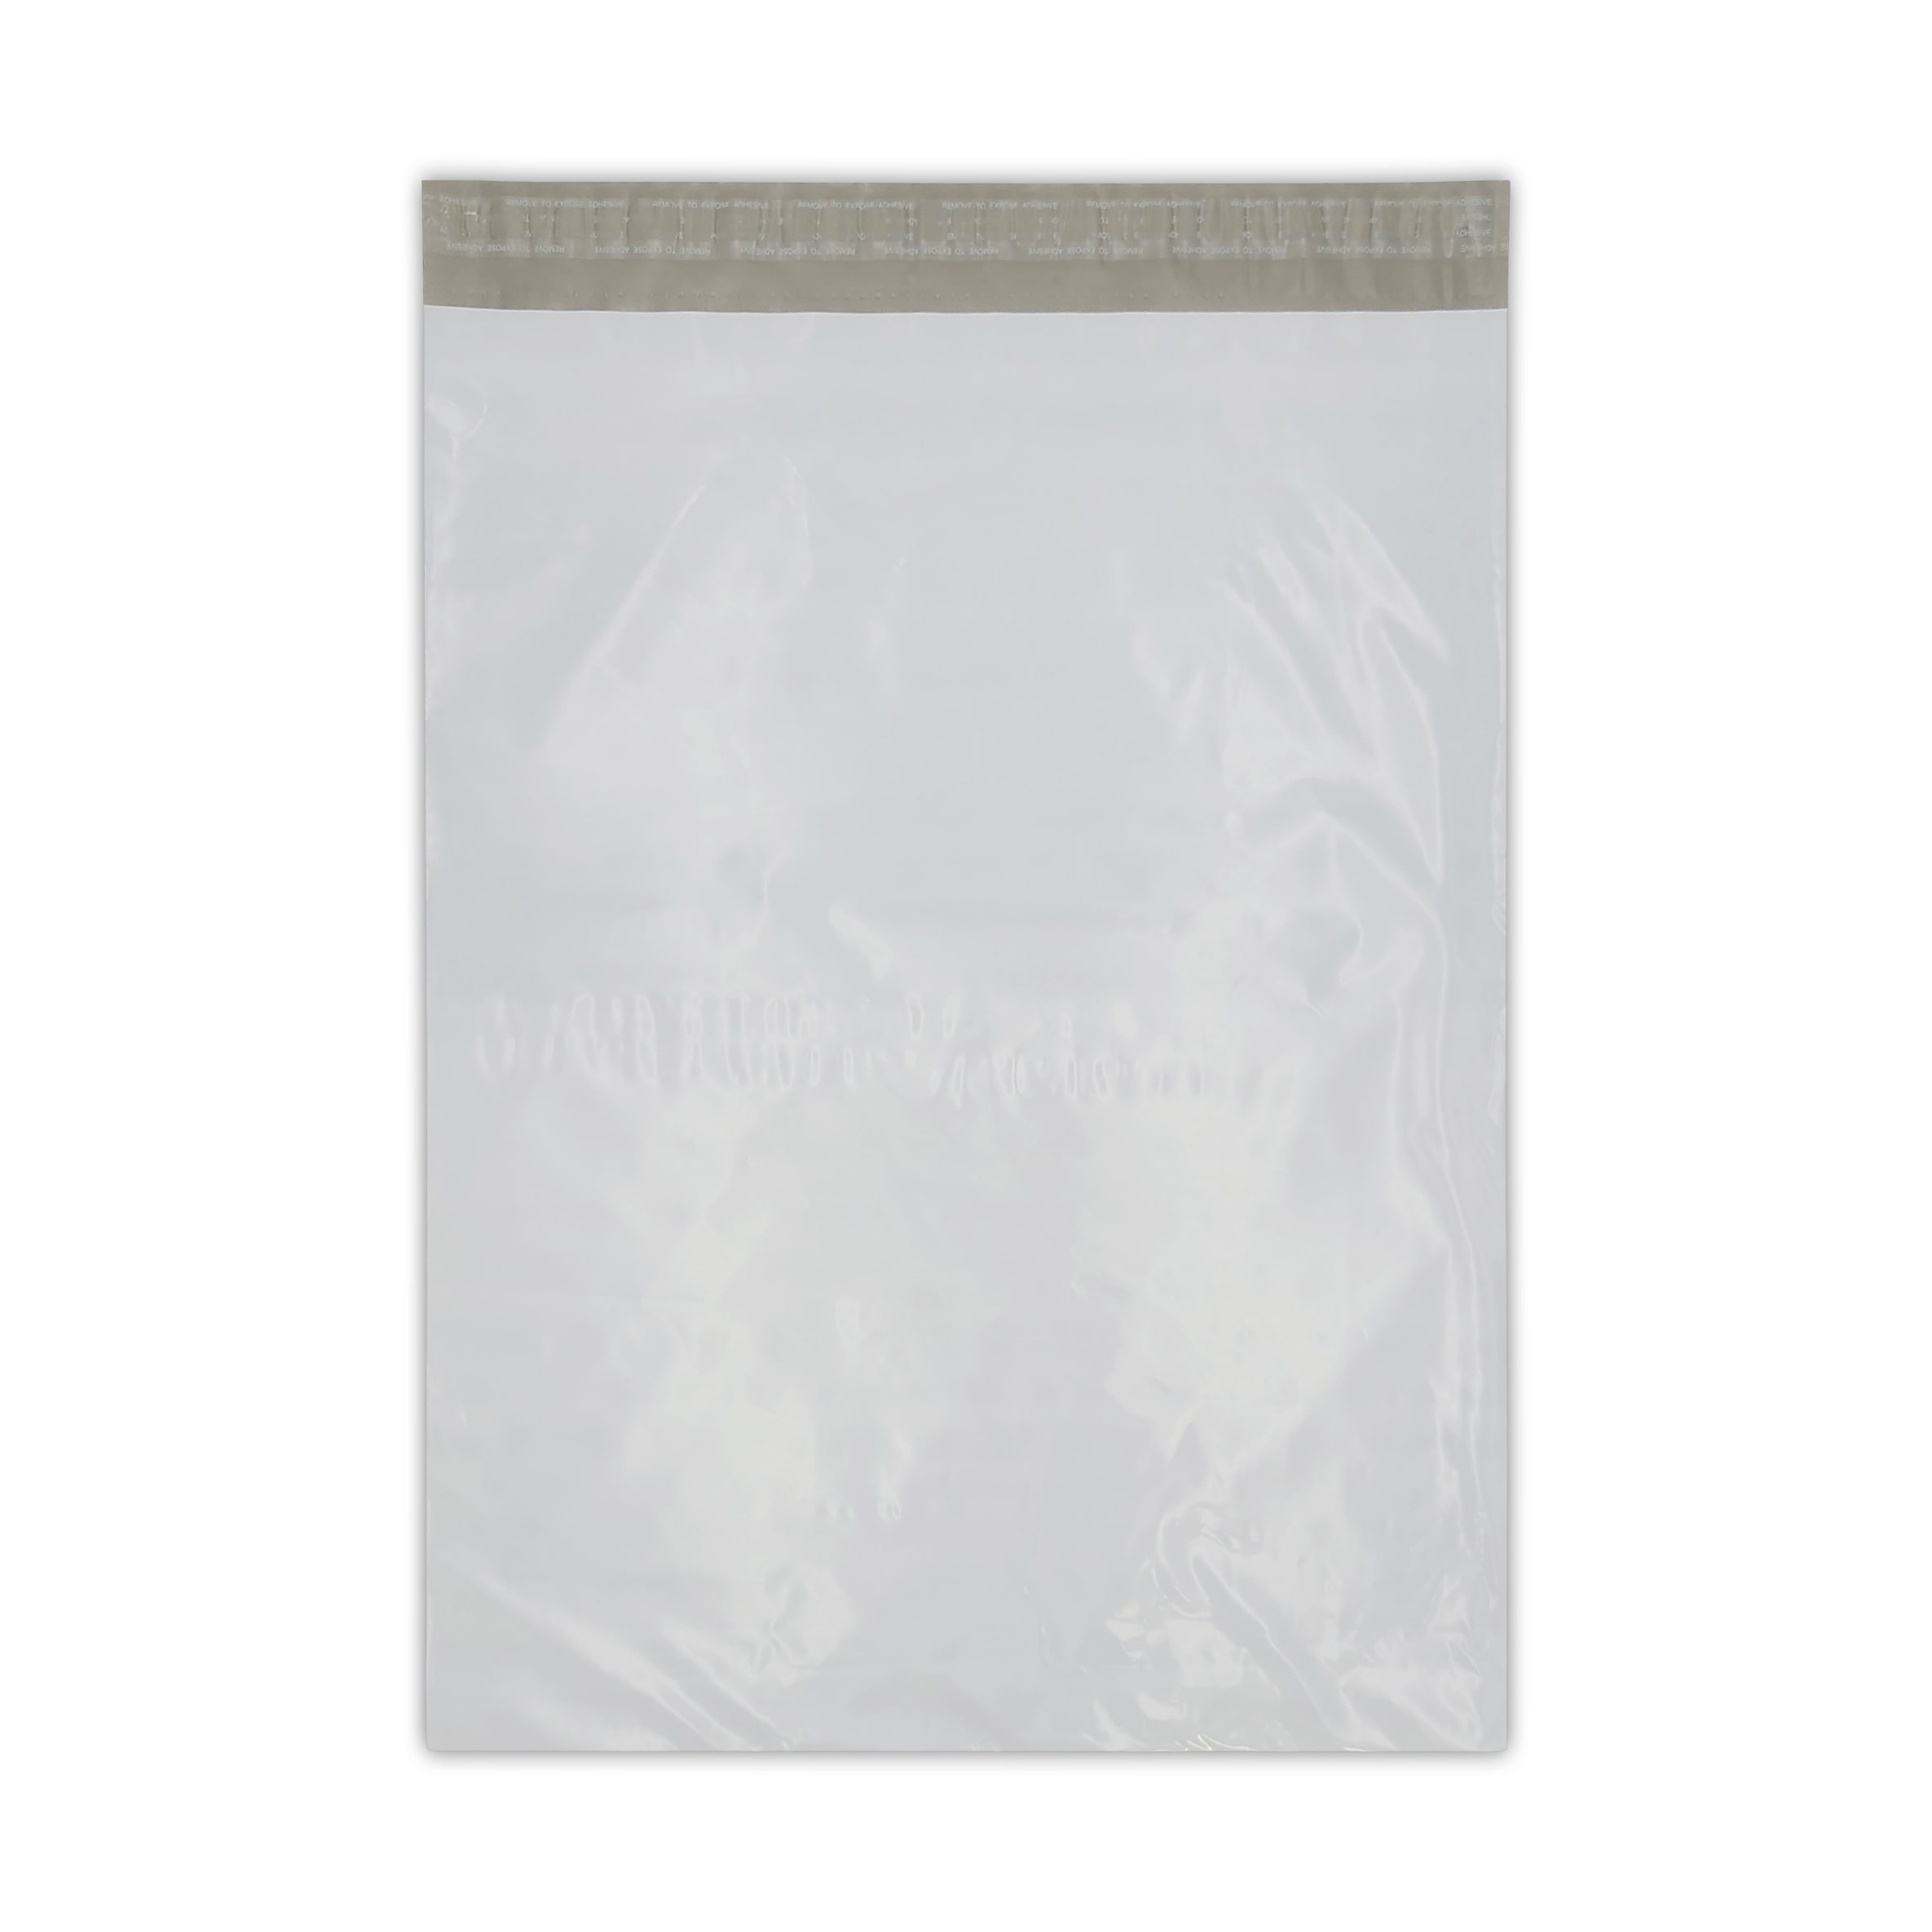 3.0 Mil 10 x 13 inch White 1000 Pack 10x13 Poly Mailers Shipping Envelope Mailer Bags Peel /& Seal